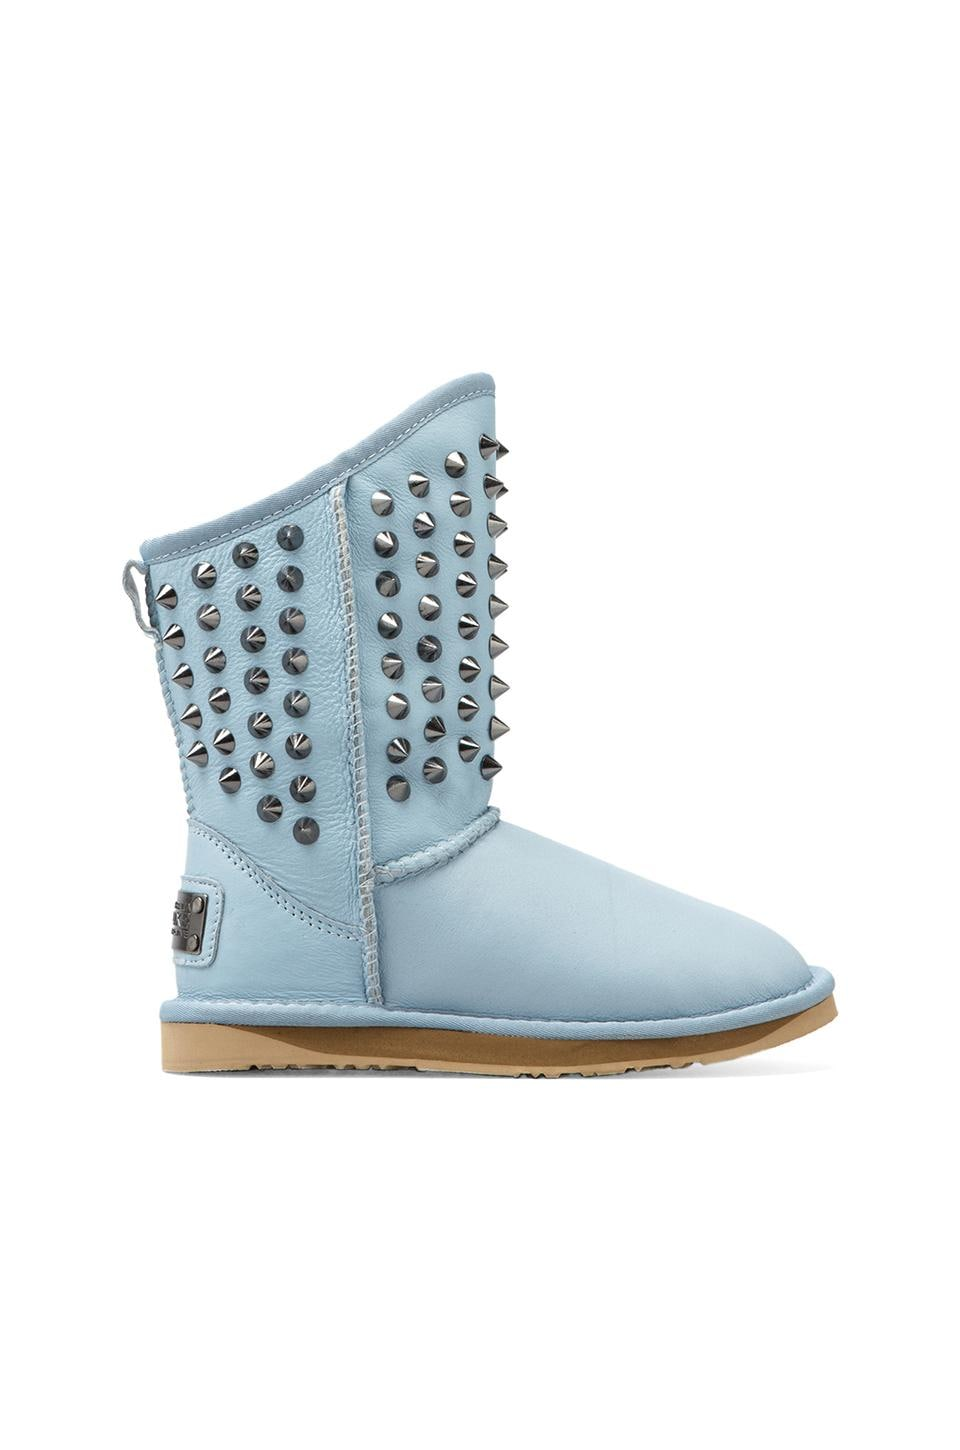 Australia Luxe Collective Pistol Boot with Sheepskin in Ice Blue